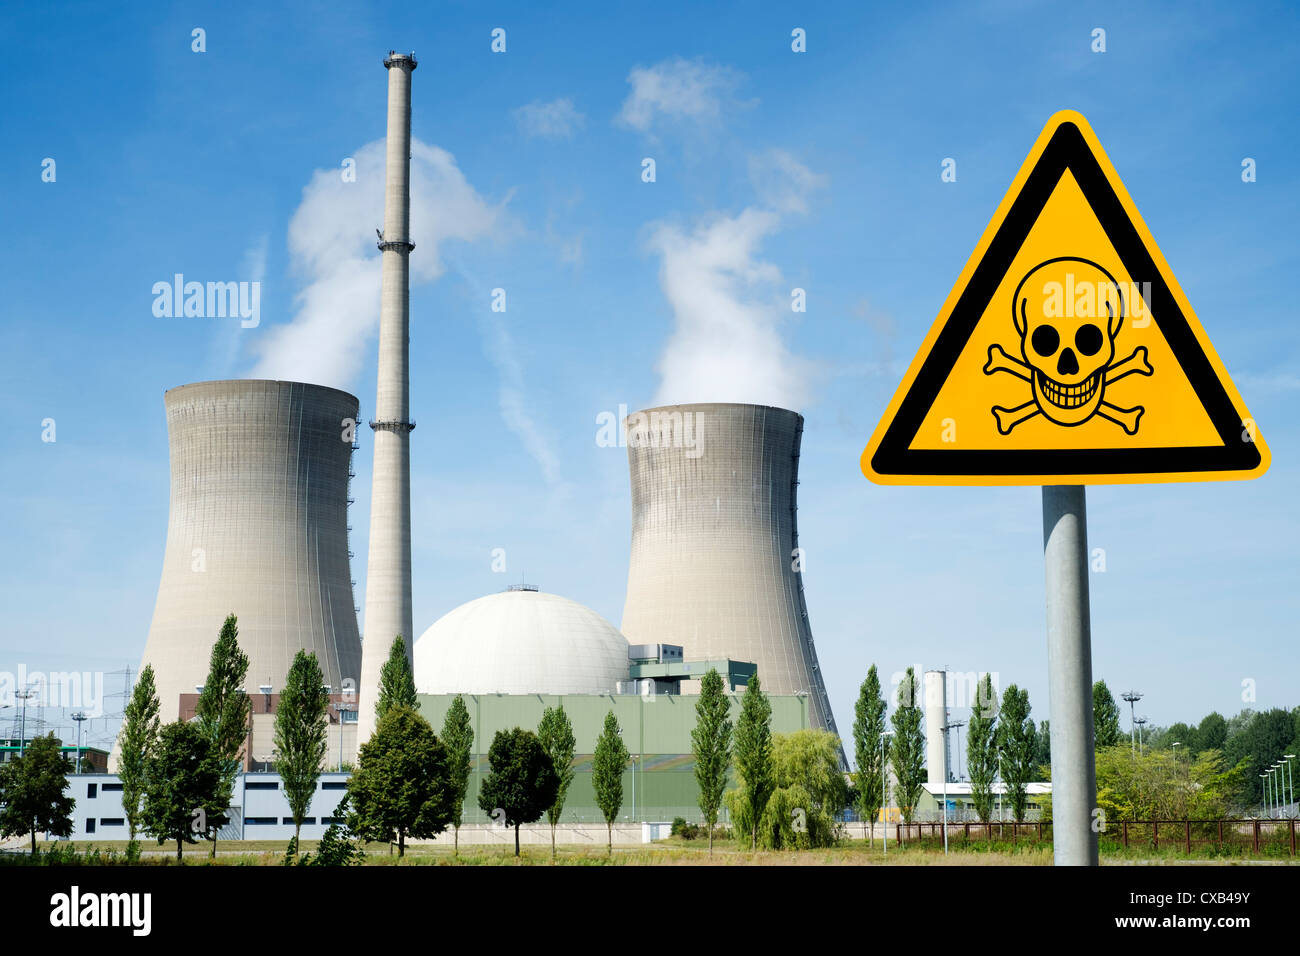 Danger sign with skull at Grafenrheinfeld nuclear power station in Germany Stock Photo